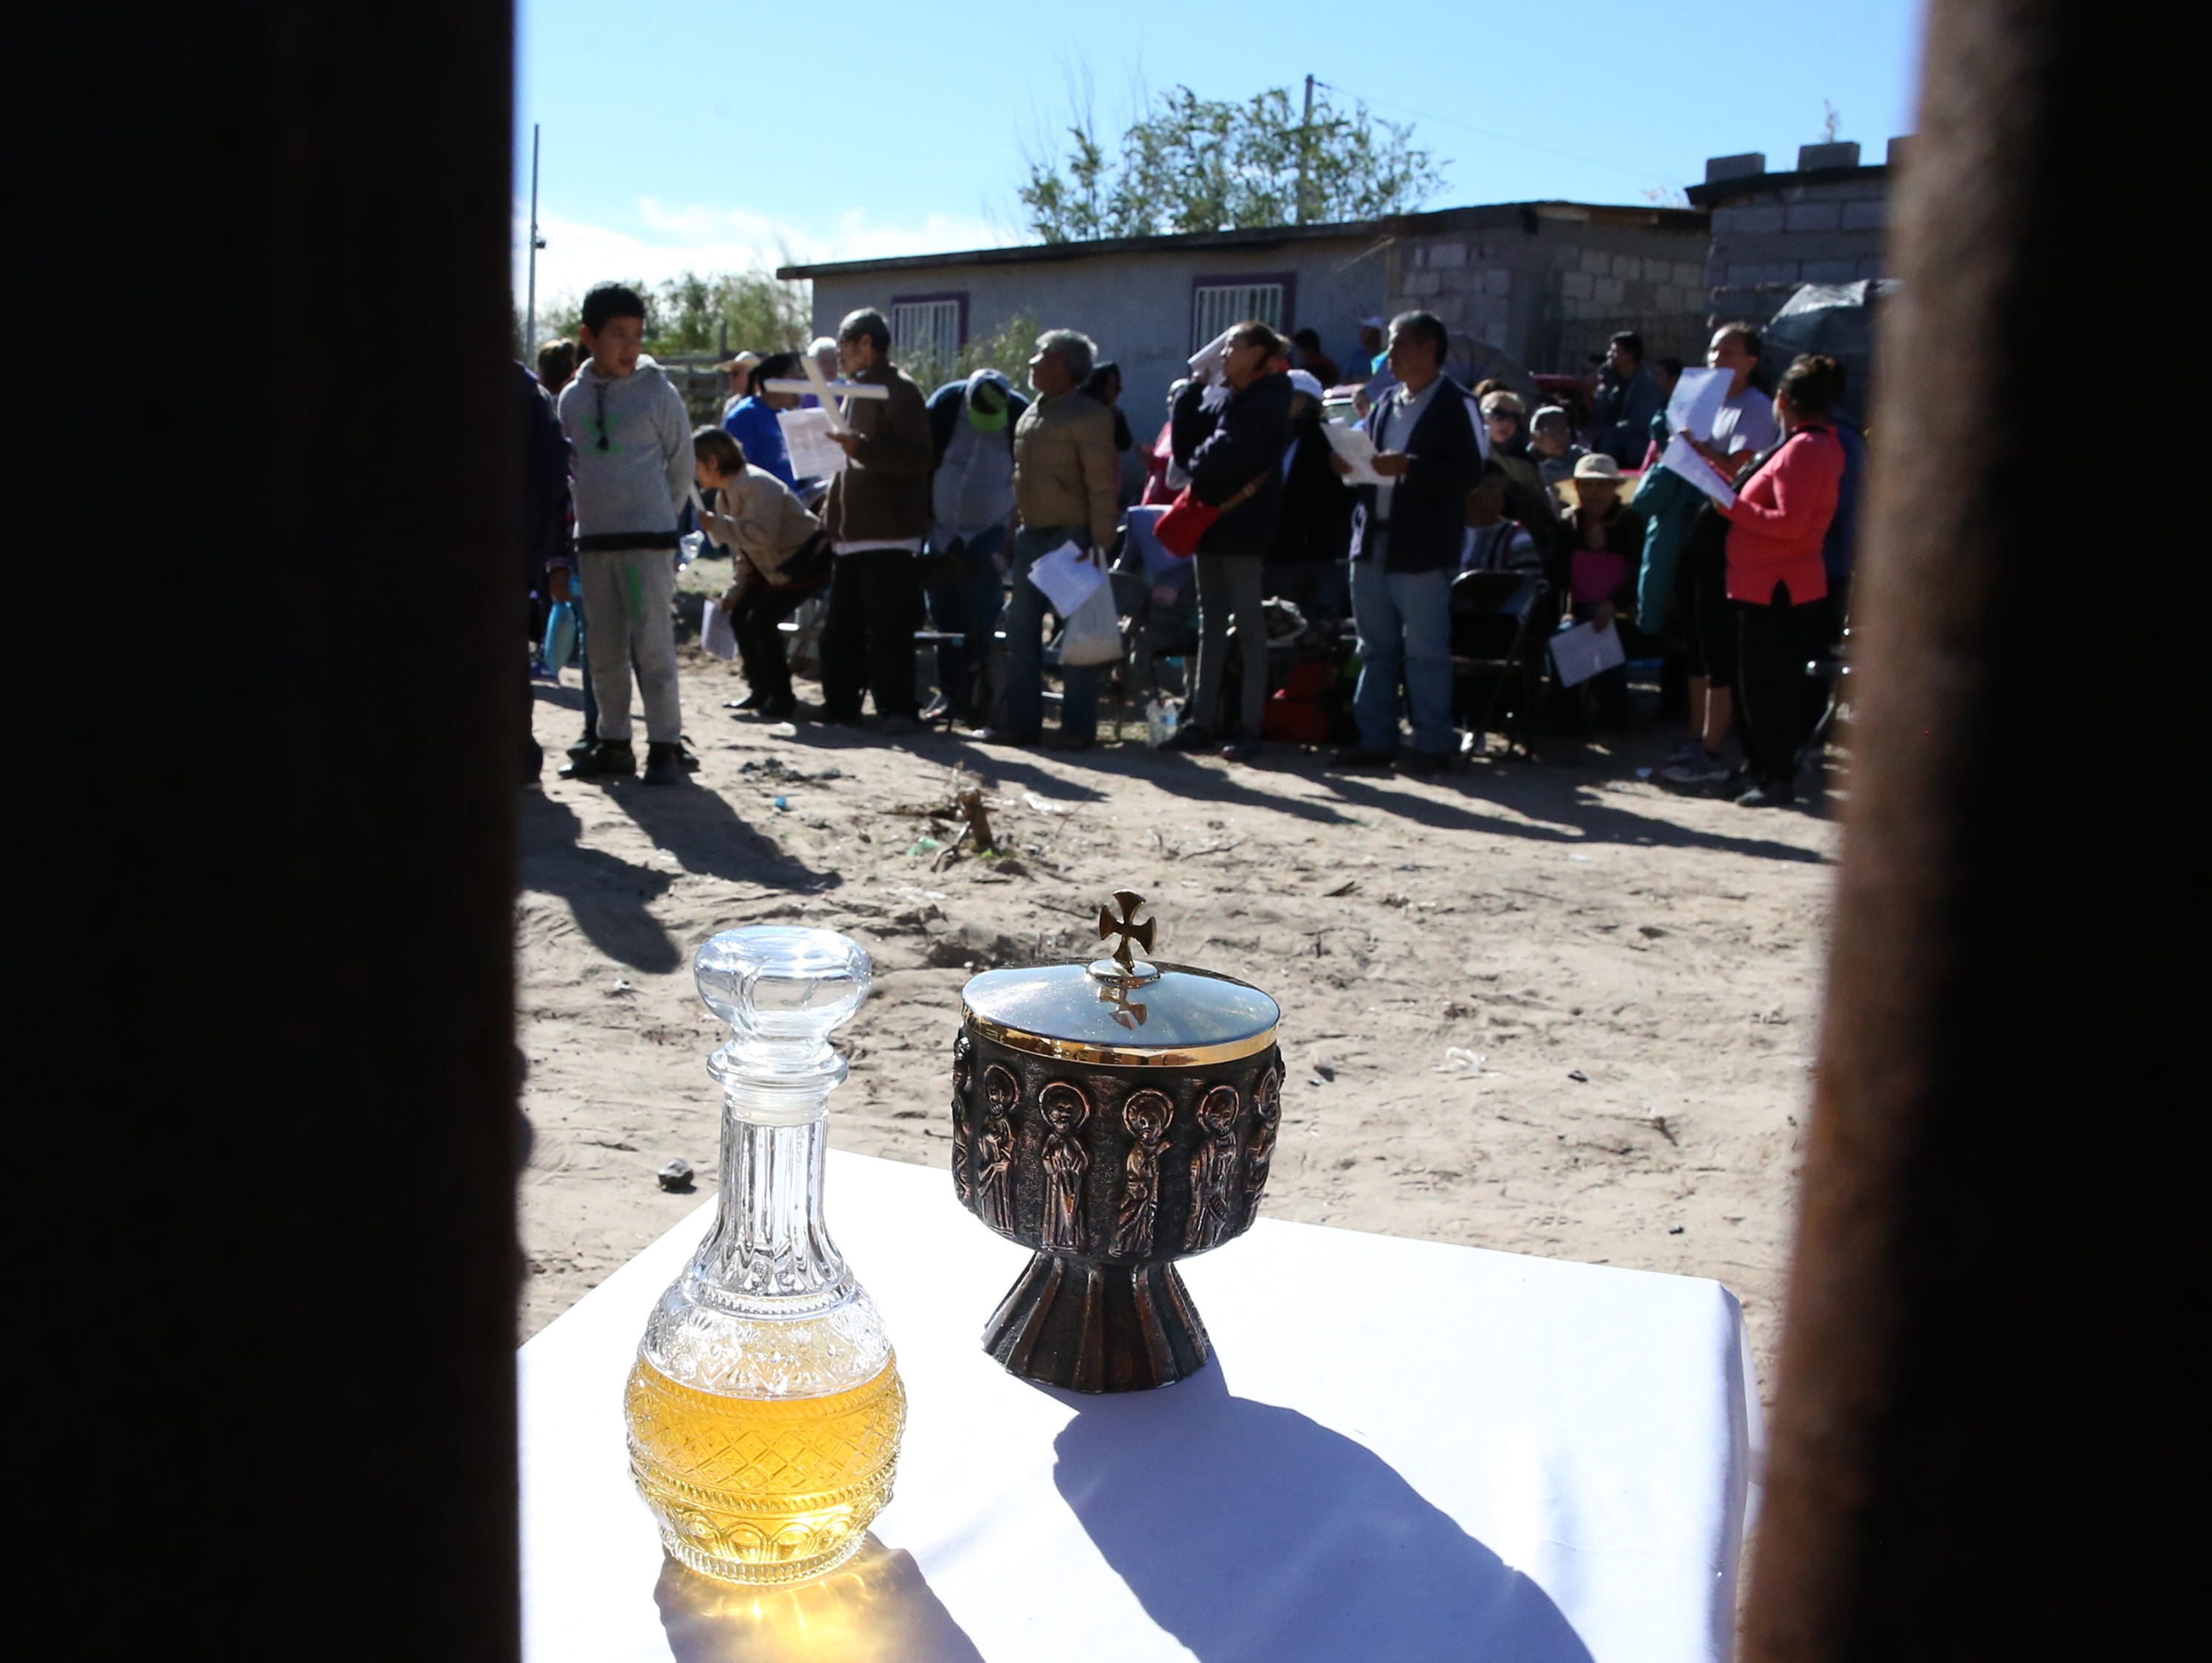 Communion at the border fence Saturday.